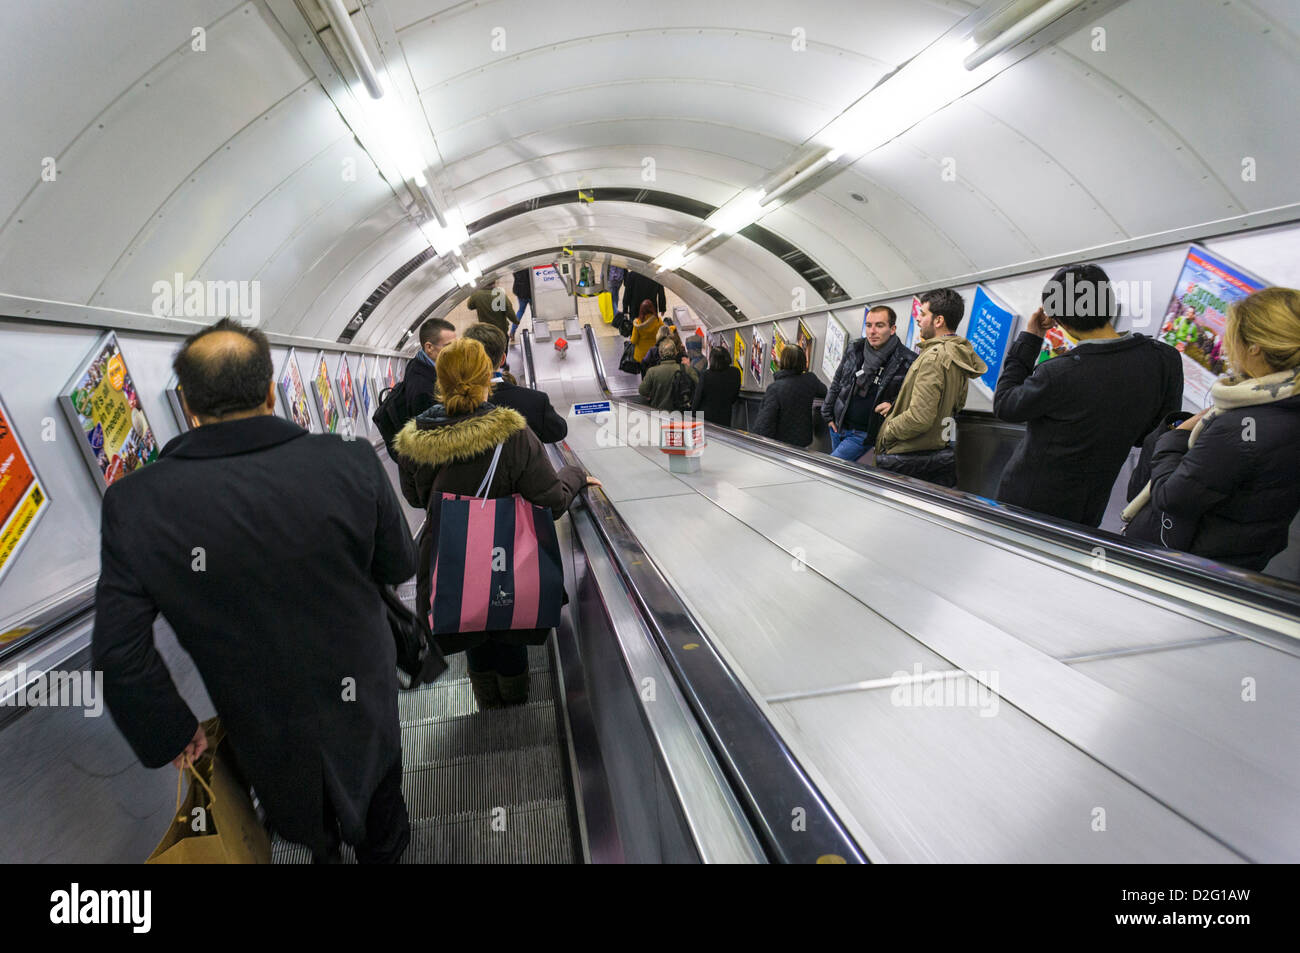 London underground tube station, with people going down the escalator - Stock Image